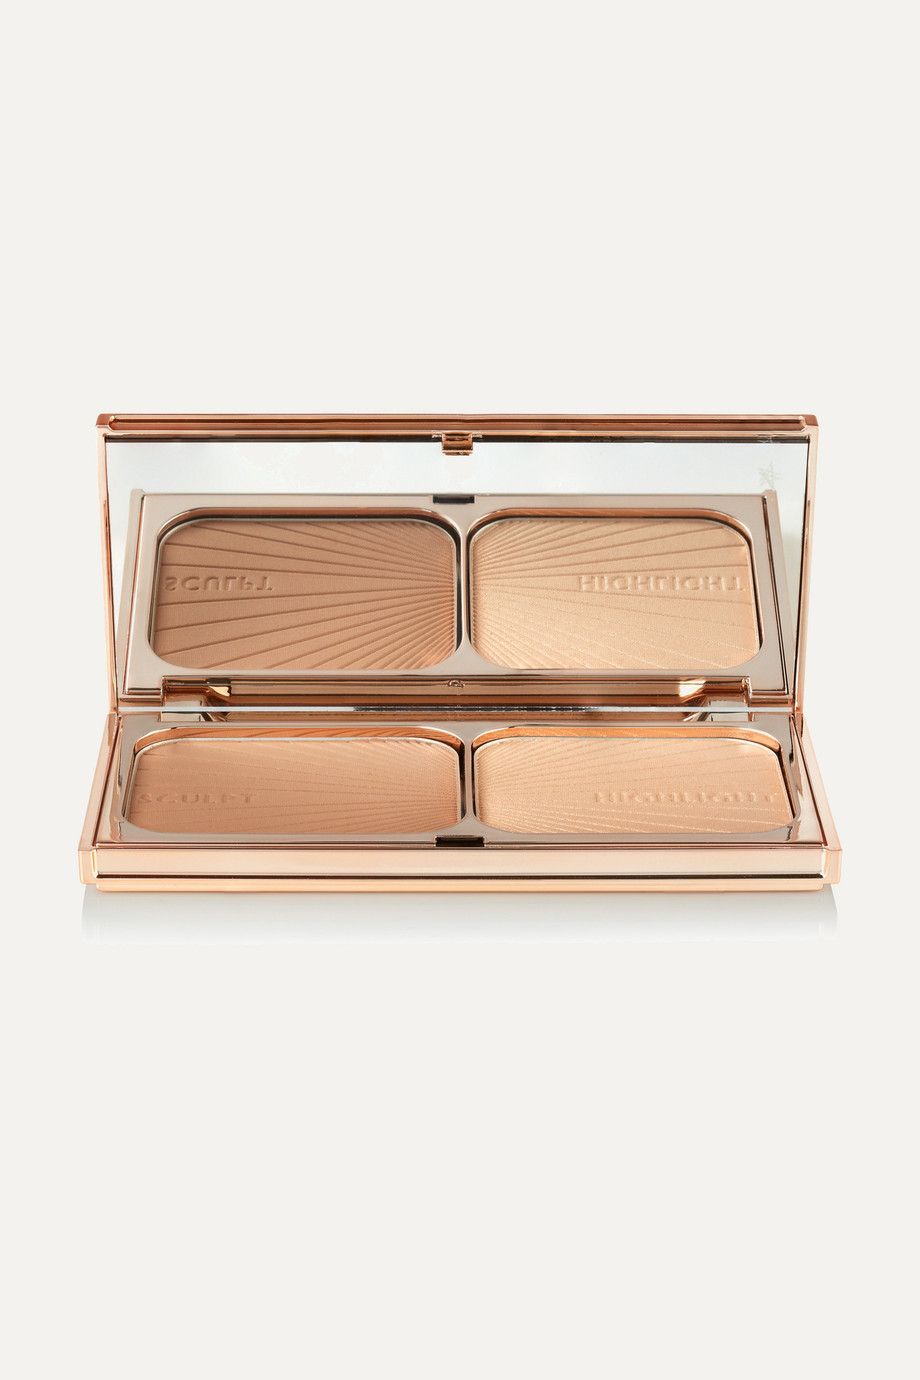 Charlotte Tilbury Filmstar Bronze & Glow - Fair to Medium